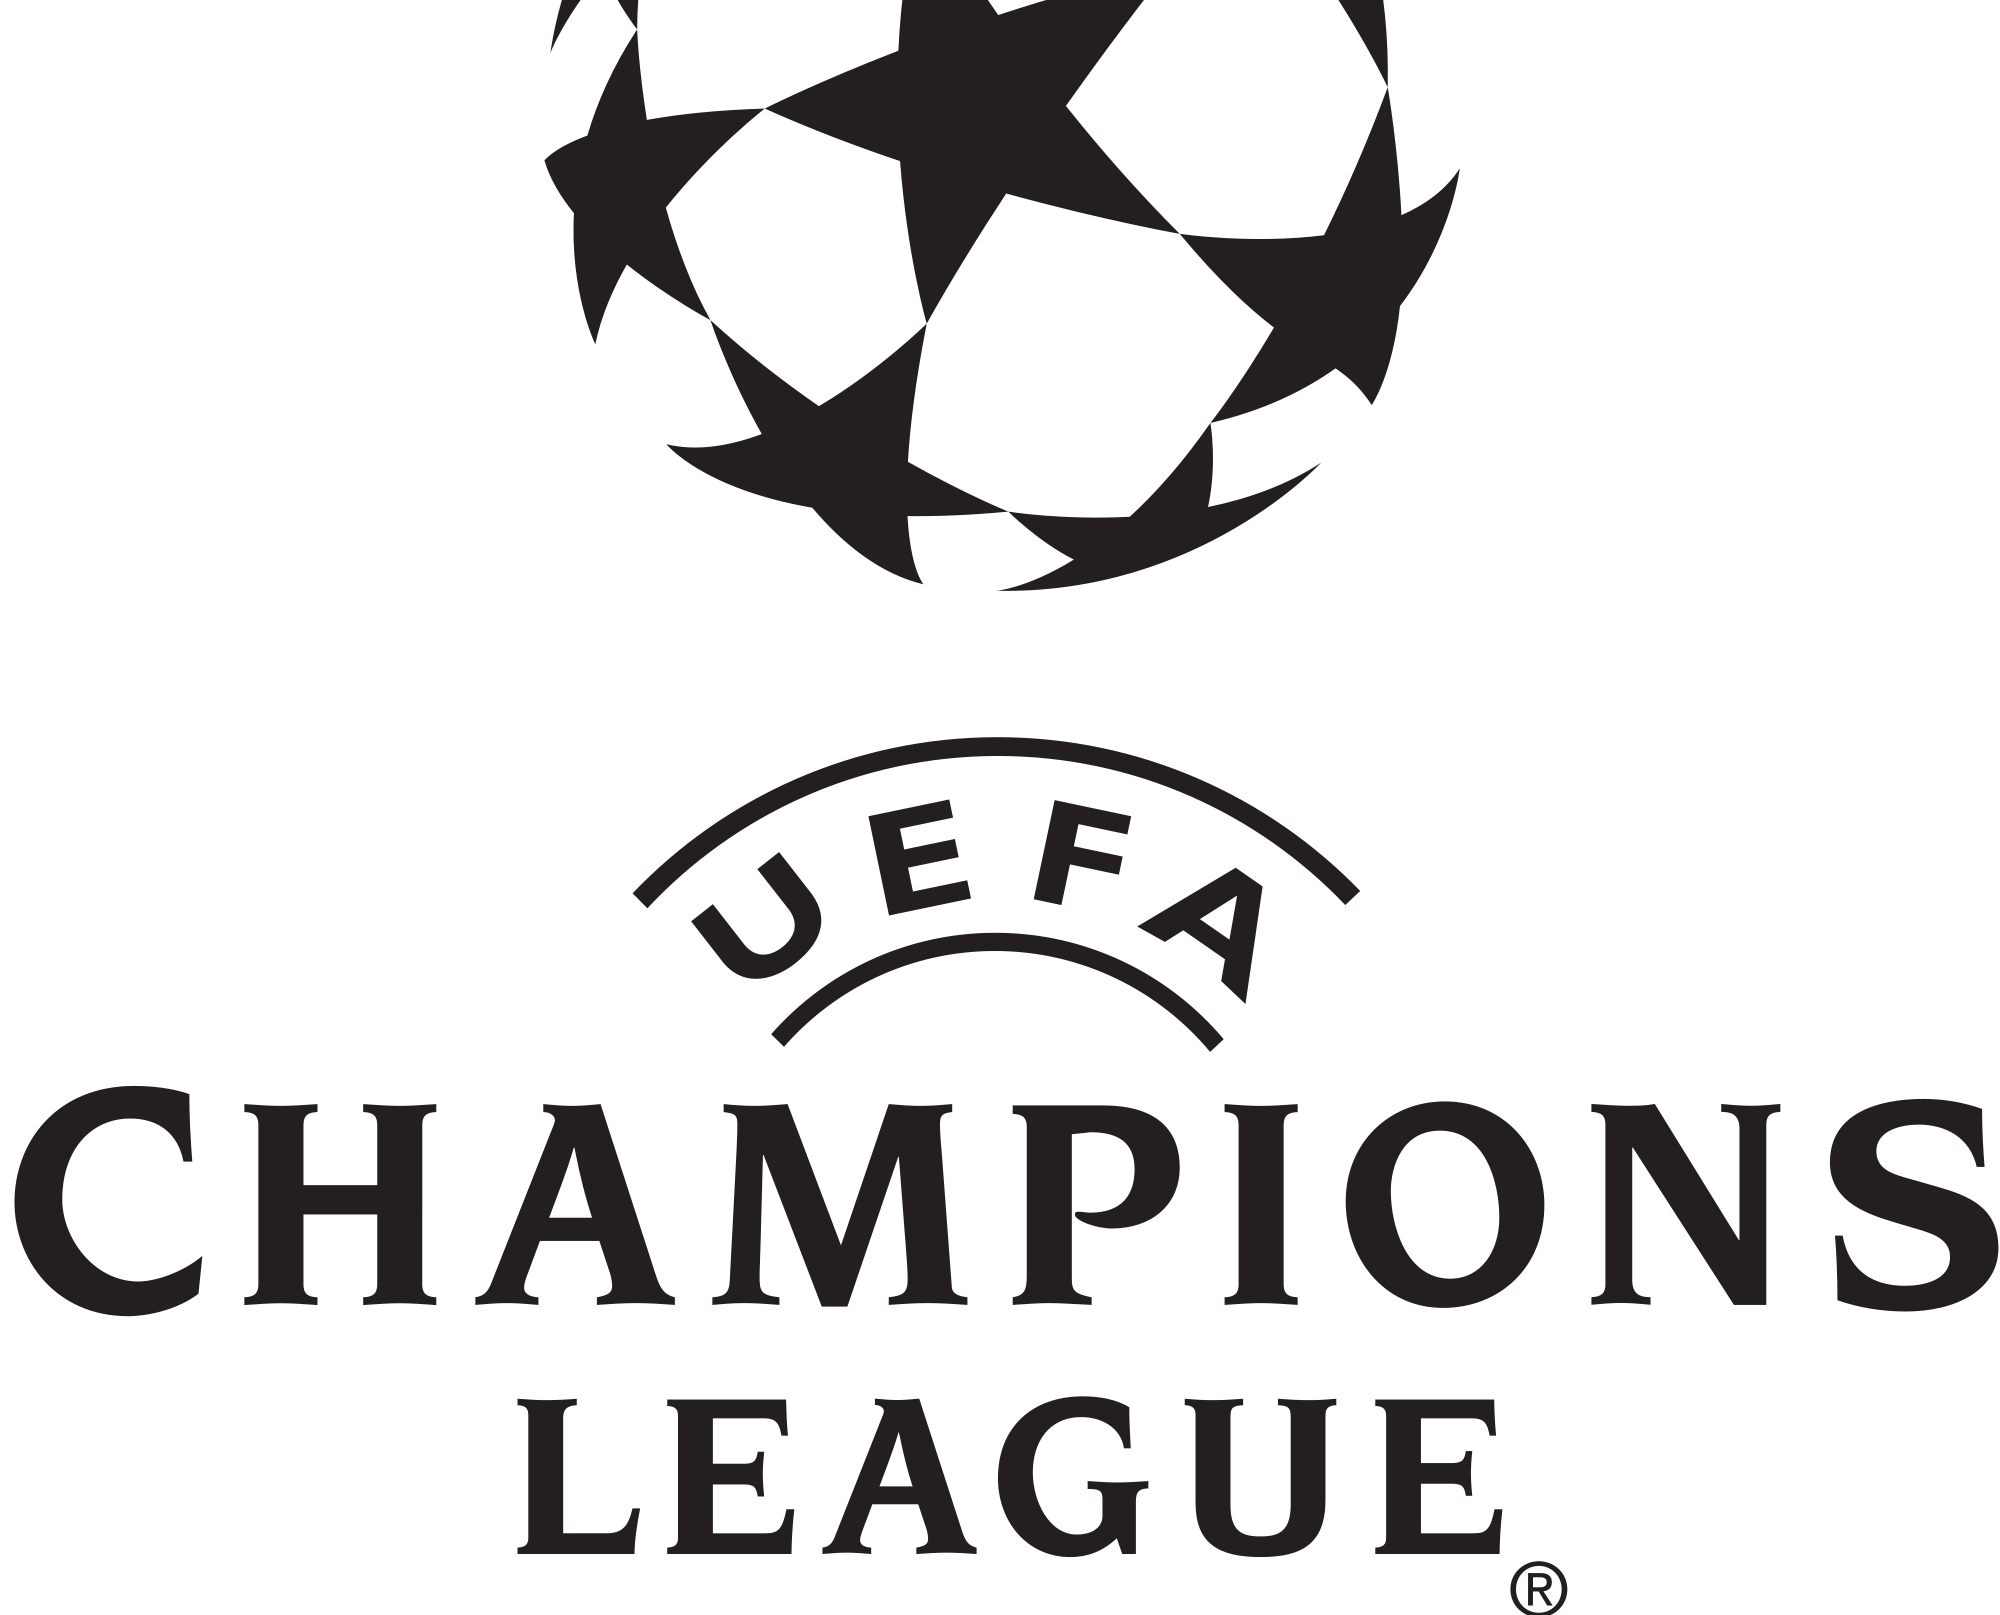 Champions league markmatters markmatters uefa champions league images photos 0322200123 altavistaventures Gallery